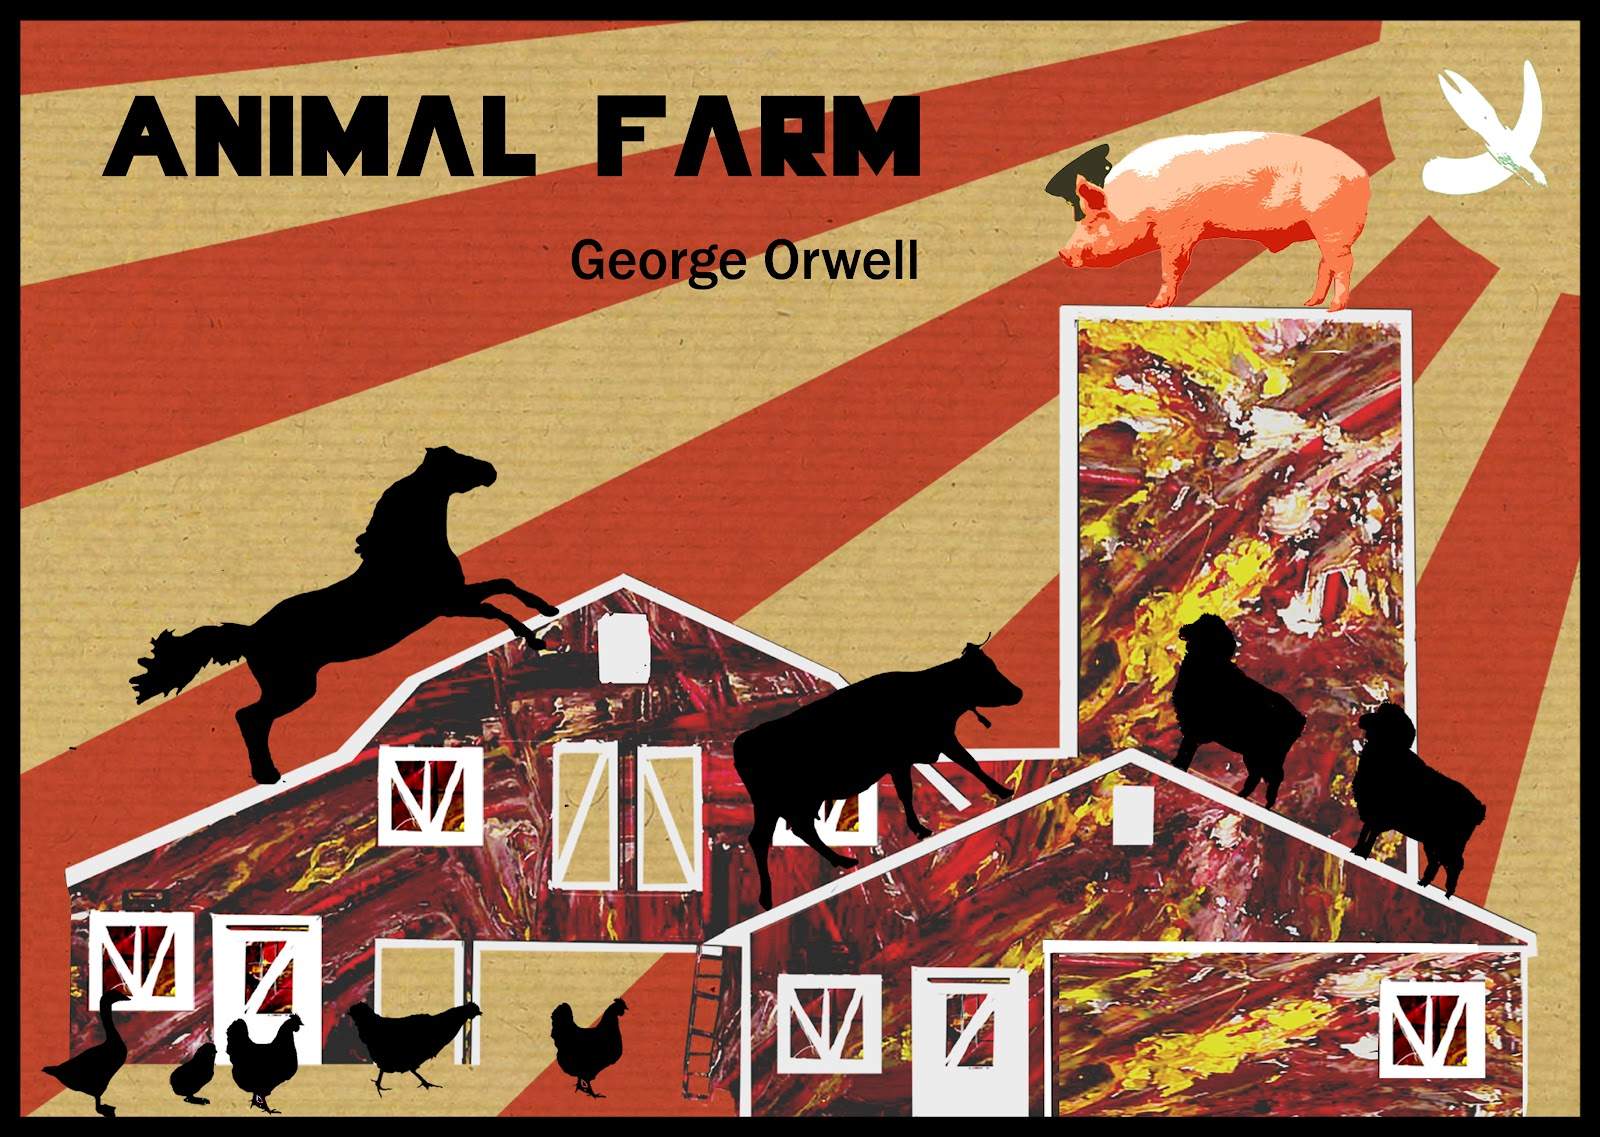 critical lens essay macbeth animal farm I like flawed characters critical lens essays and research papers  animal farm written by george orwell,  streetcar named desire and macbeth critical lens essay.